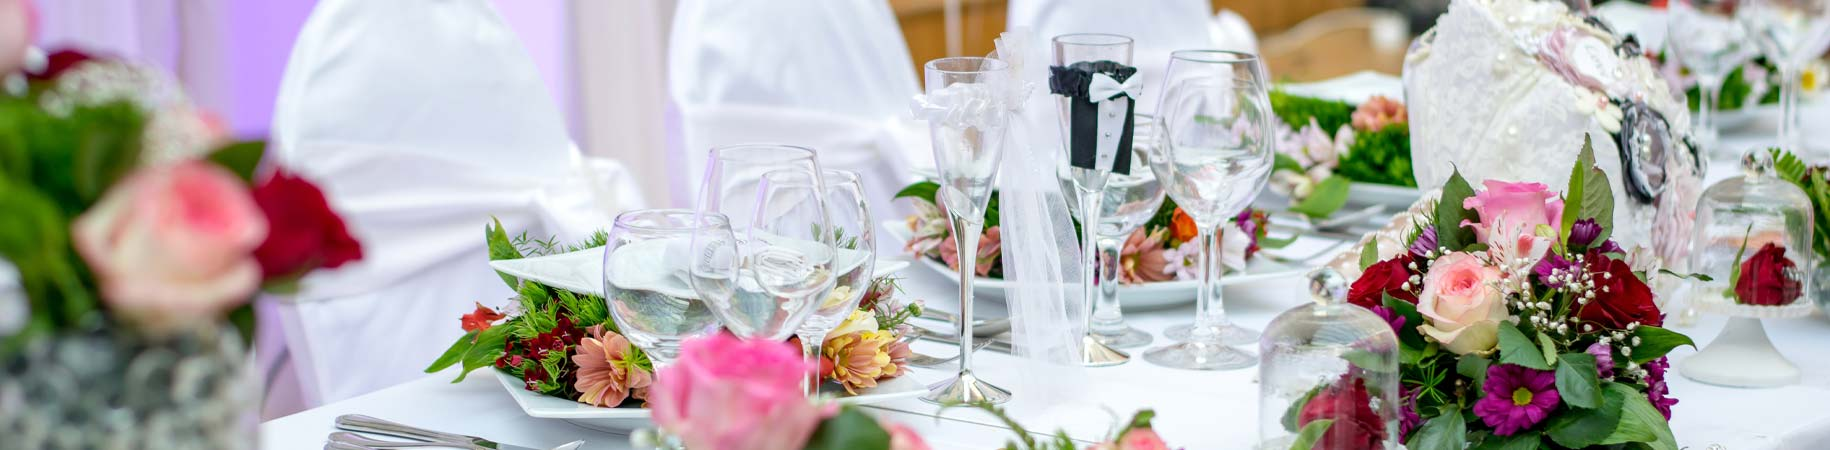 Top table for bride and groom at wedding